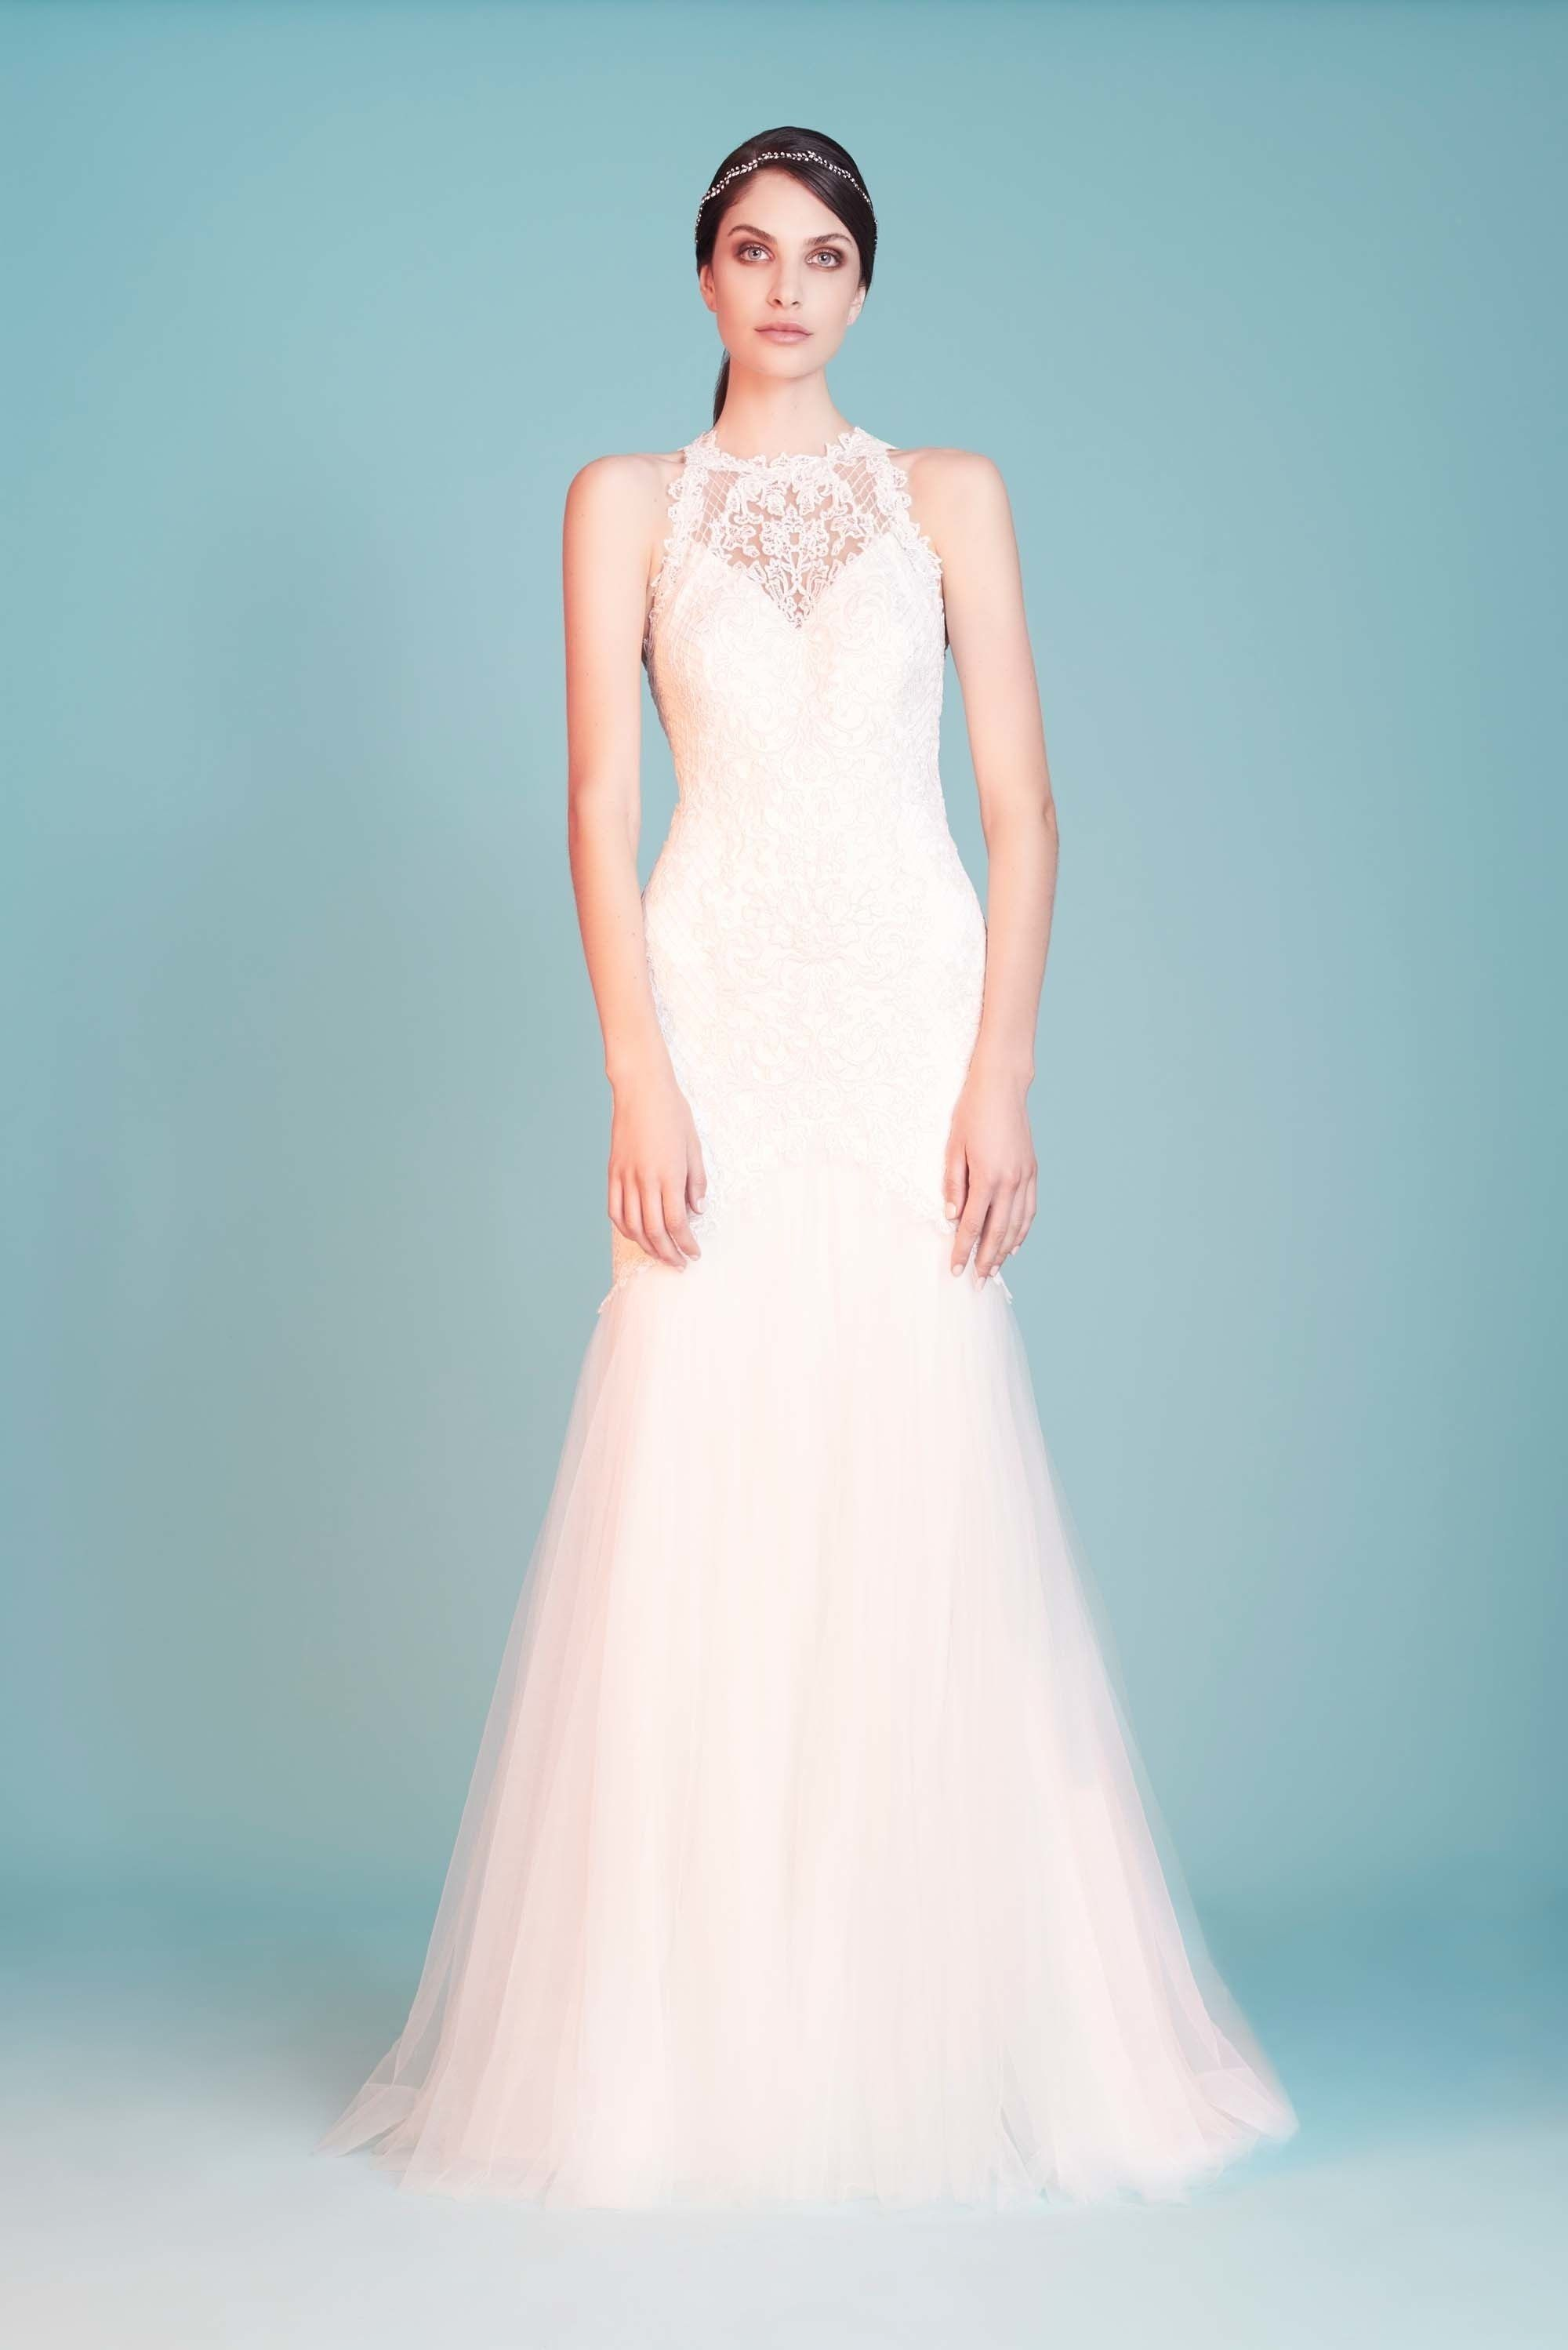 Lovely Wedding Gowns For Petite Contemporary - Wedding Ideas ...